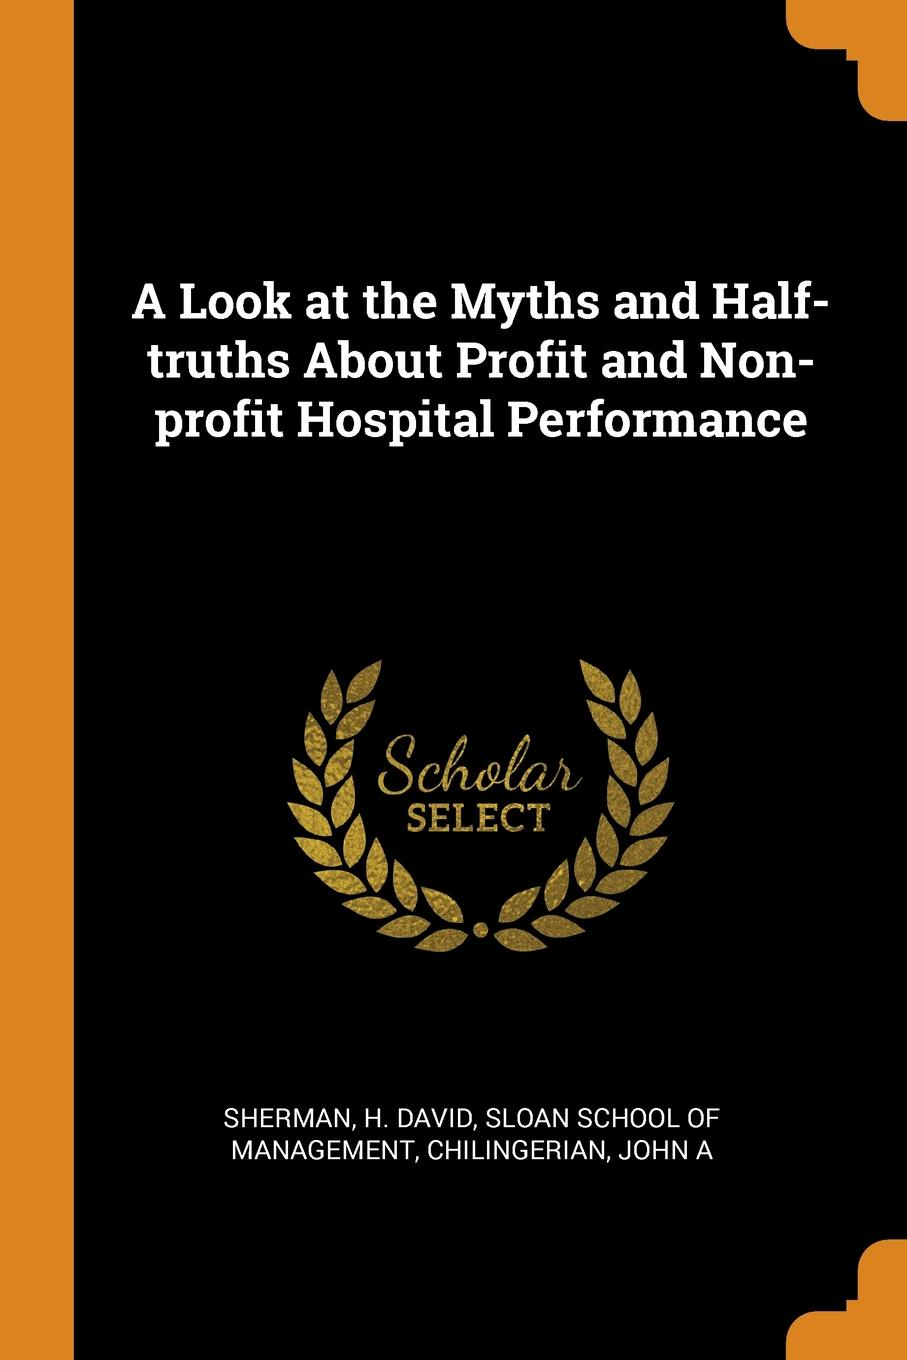 H David Sherman, John A Chilingerian A Look at the Myths and Half-truths About Profit and Non-profit Hospital Performance